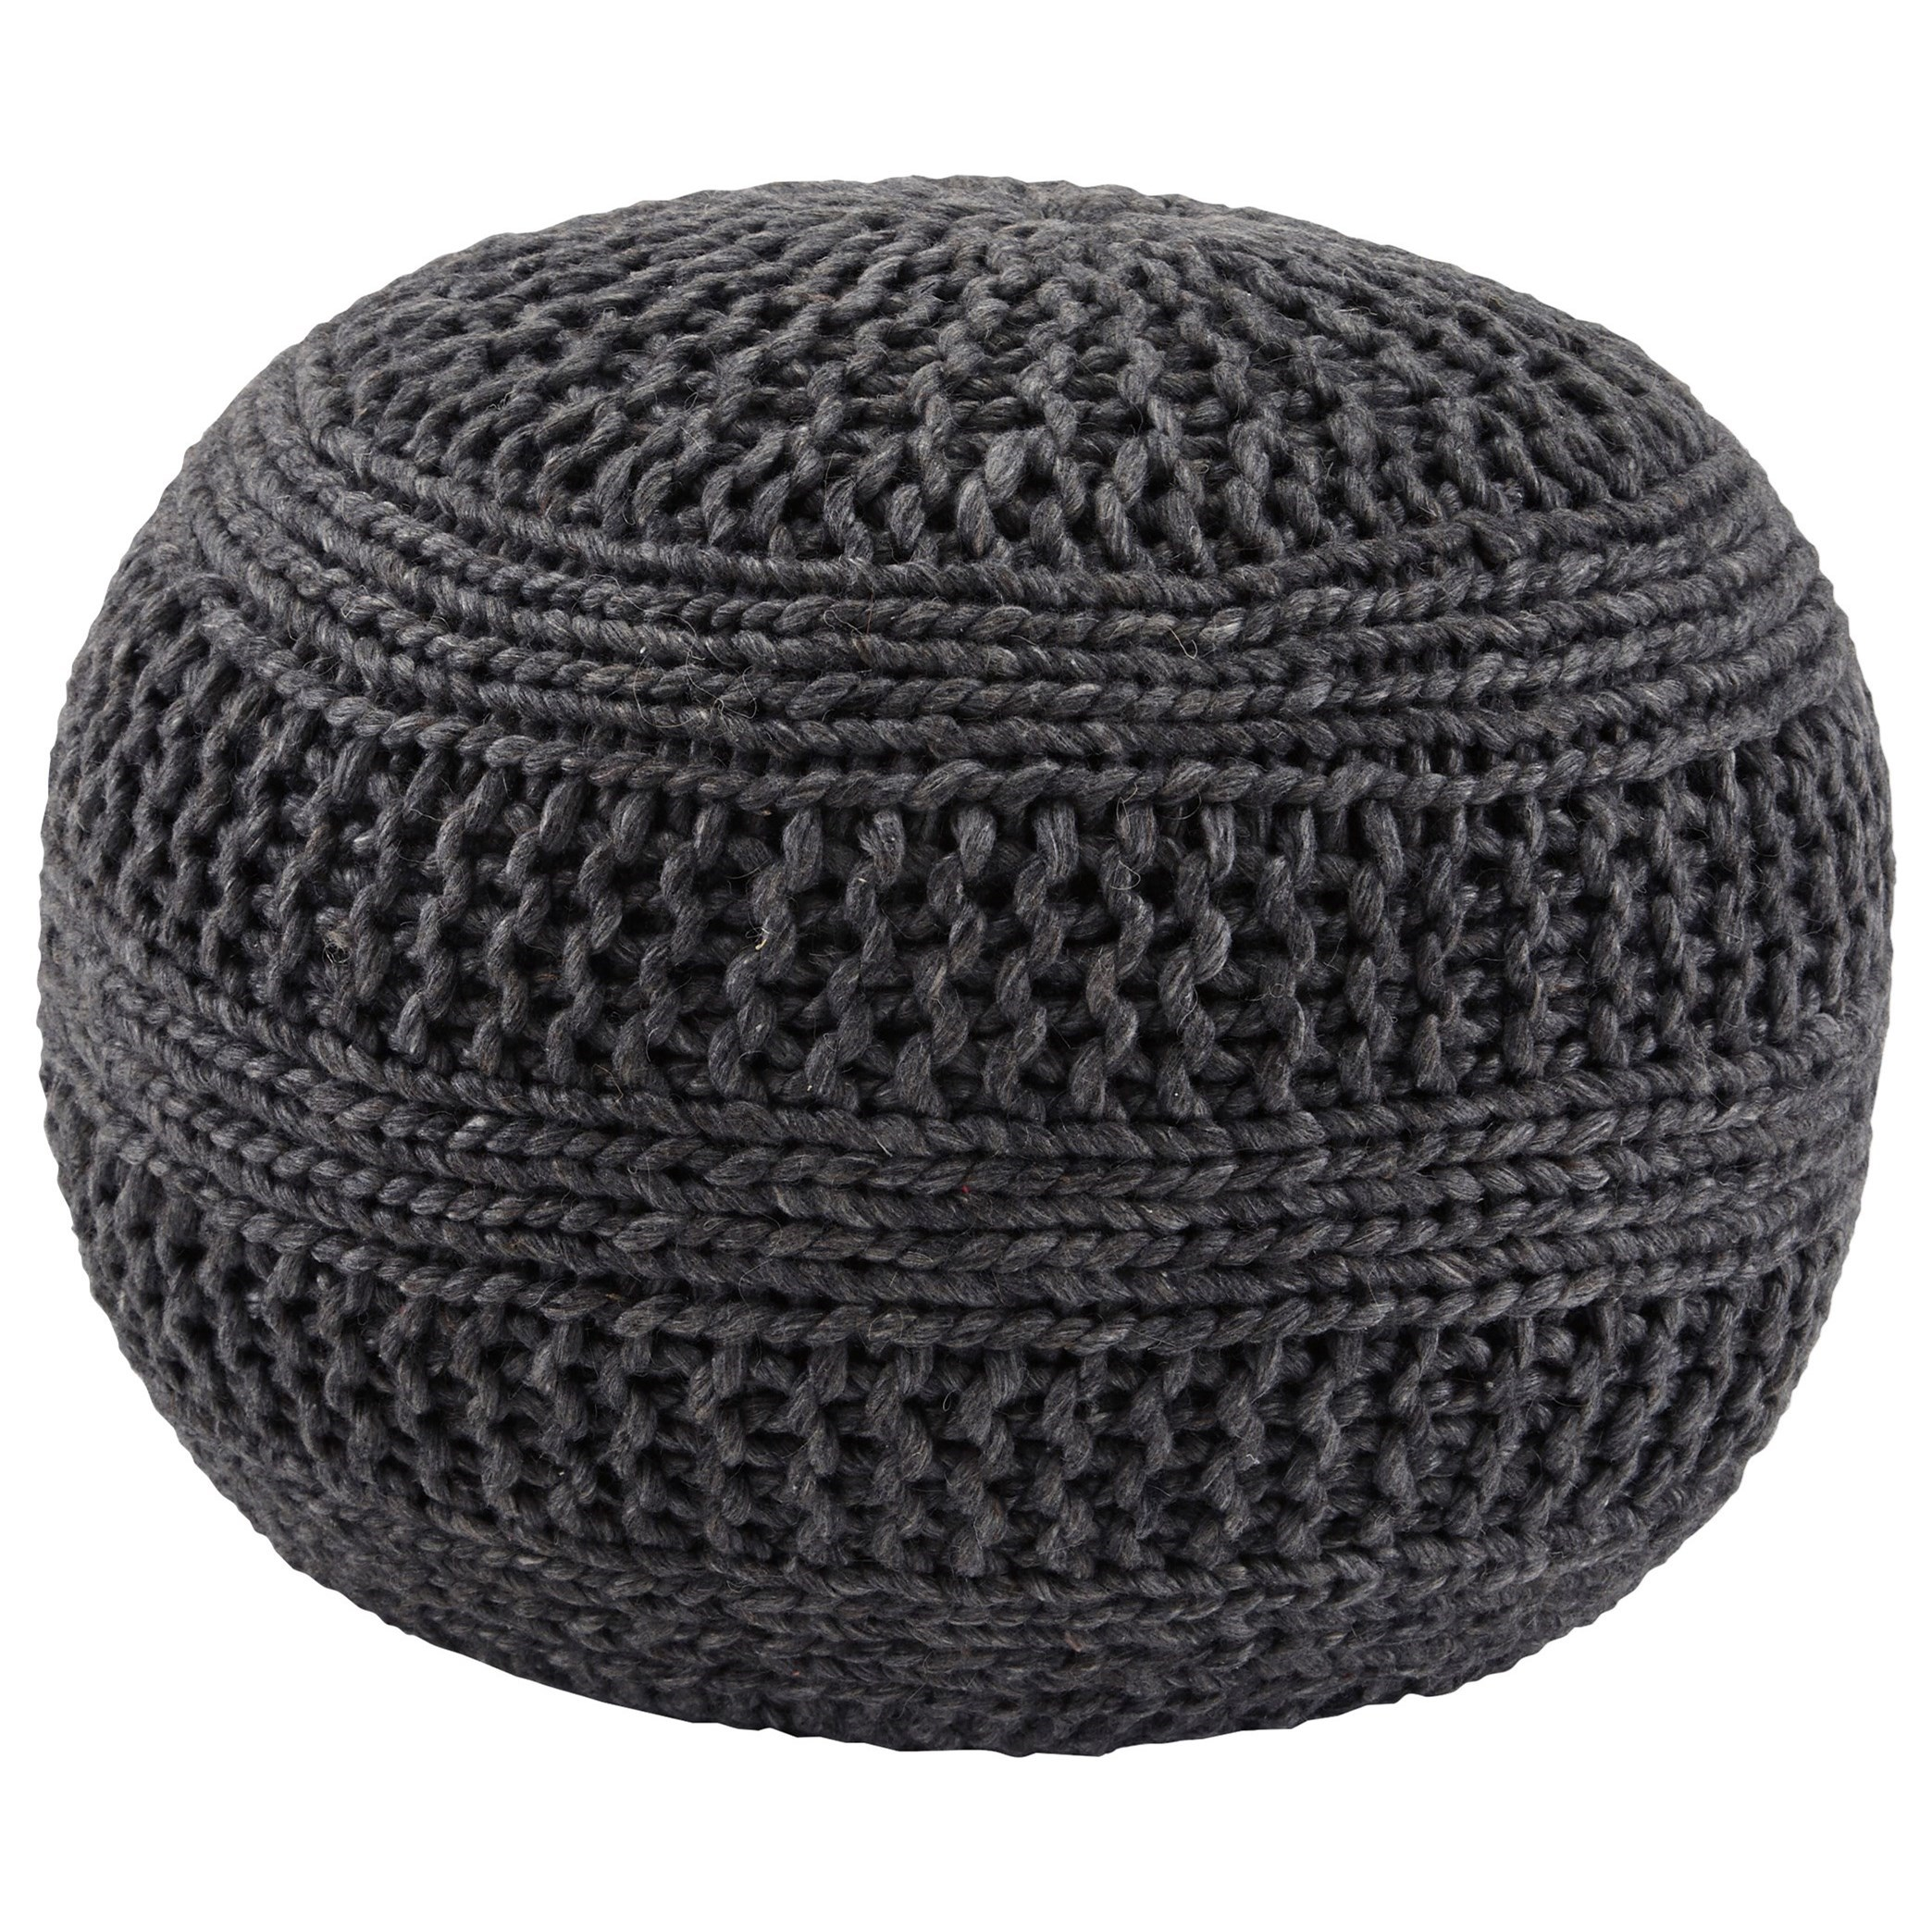 signature design by ashley poufs benedict charcoal pouf. Black Bedroom Furniture Sets. Home Design Ideas